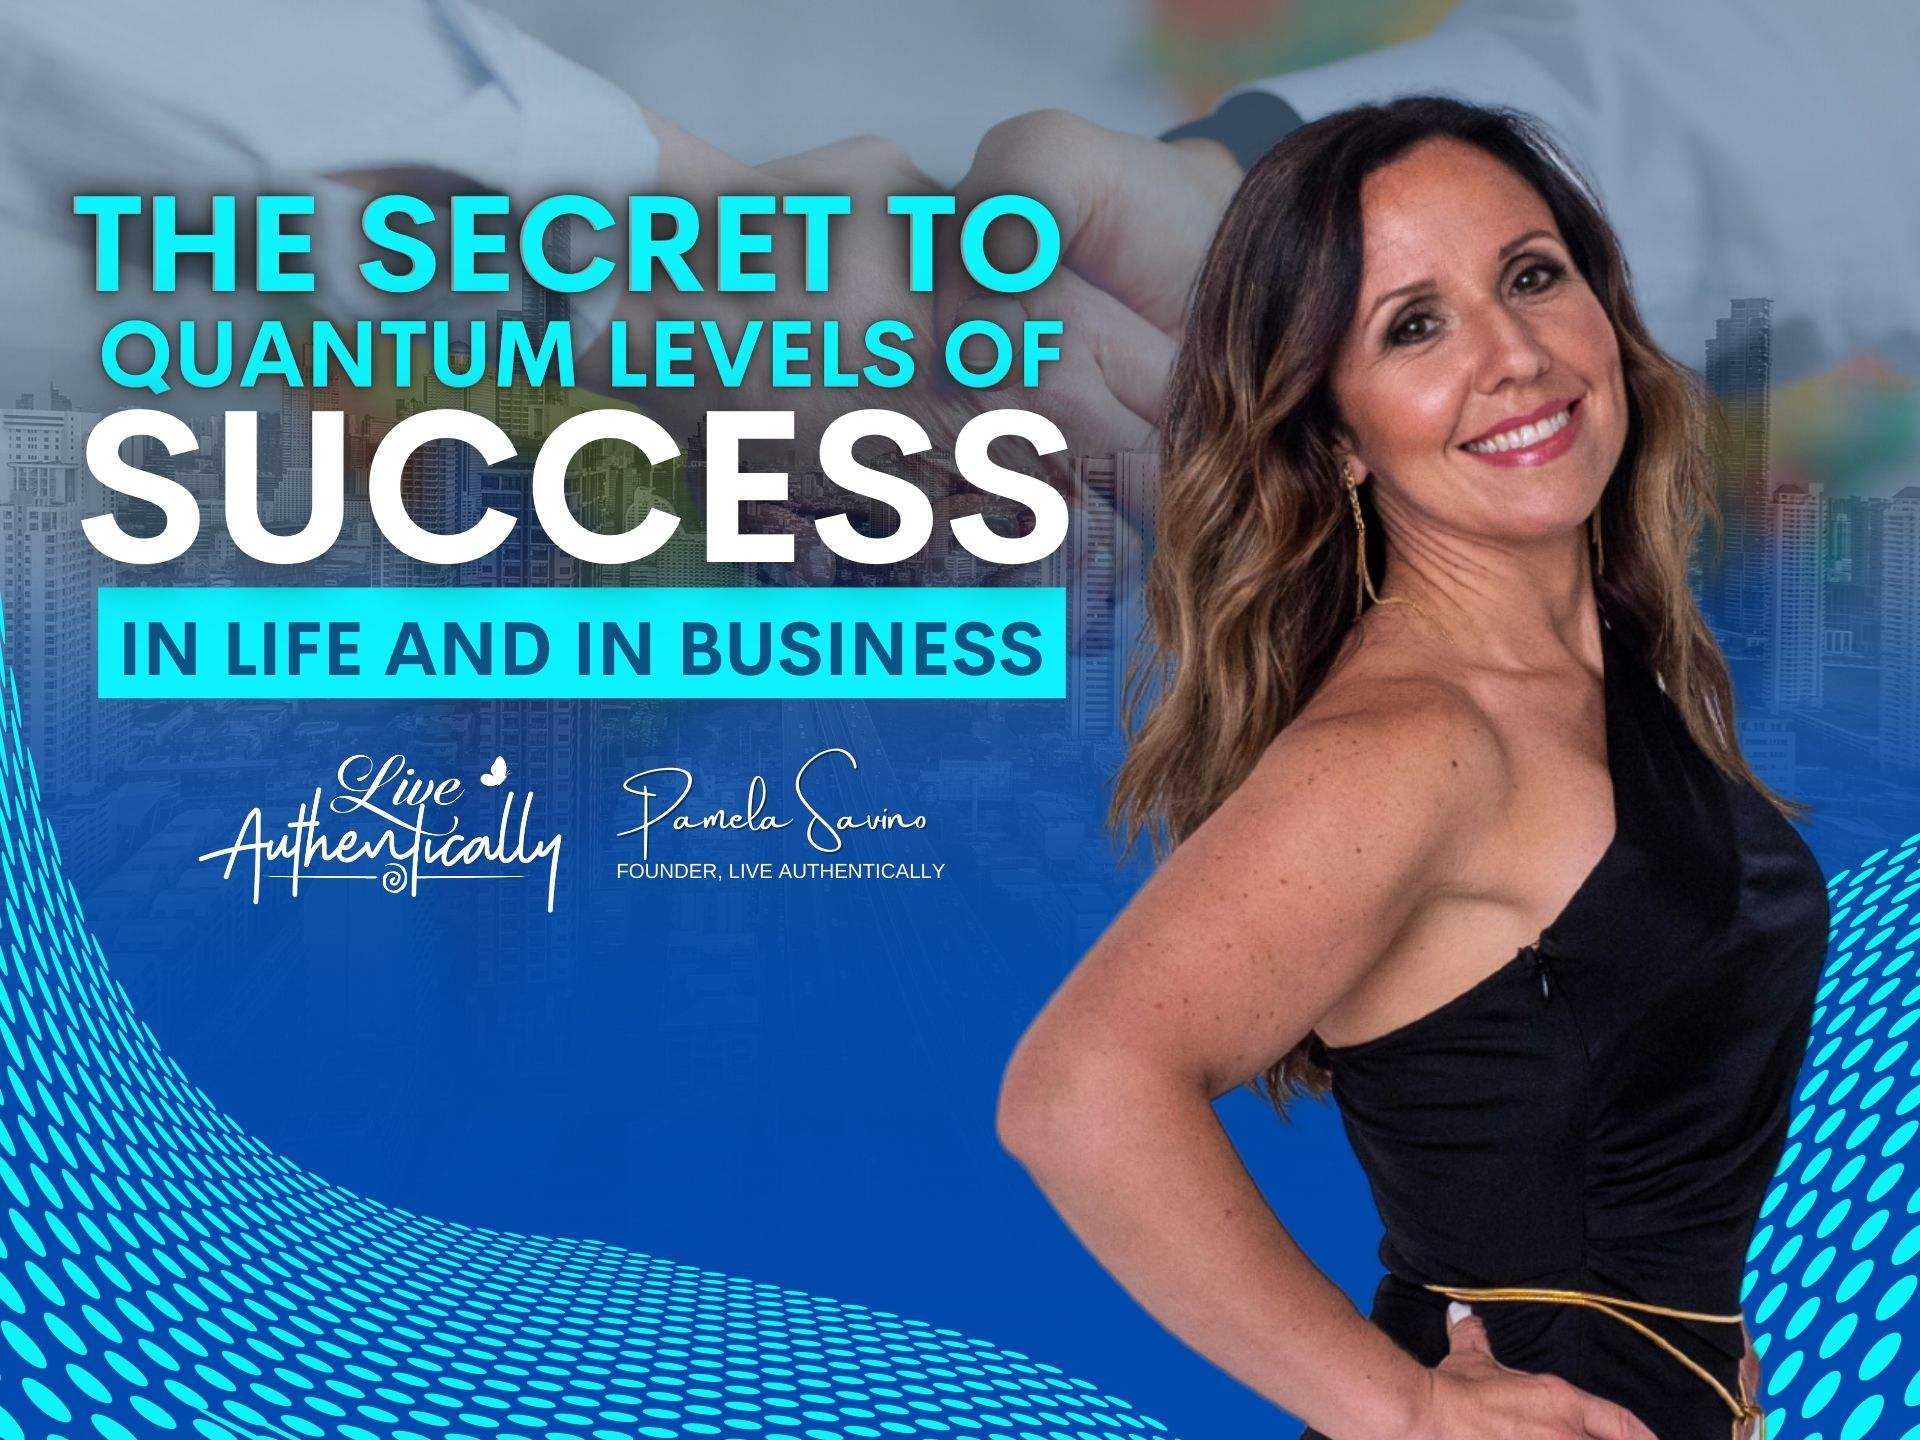 The Secret to Quantum Levels of Success, in Life and in Business